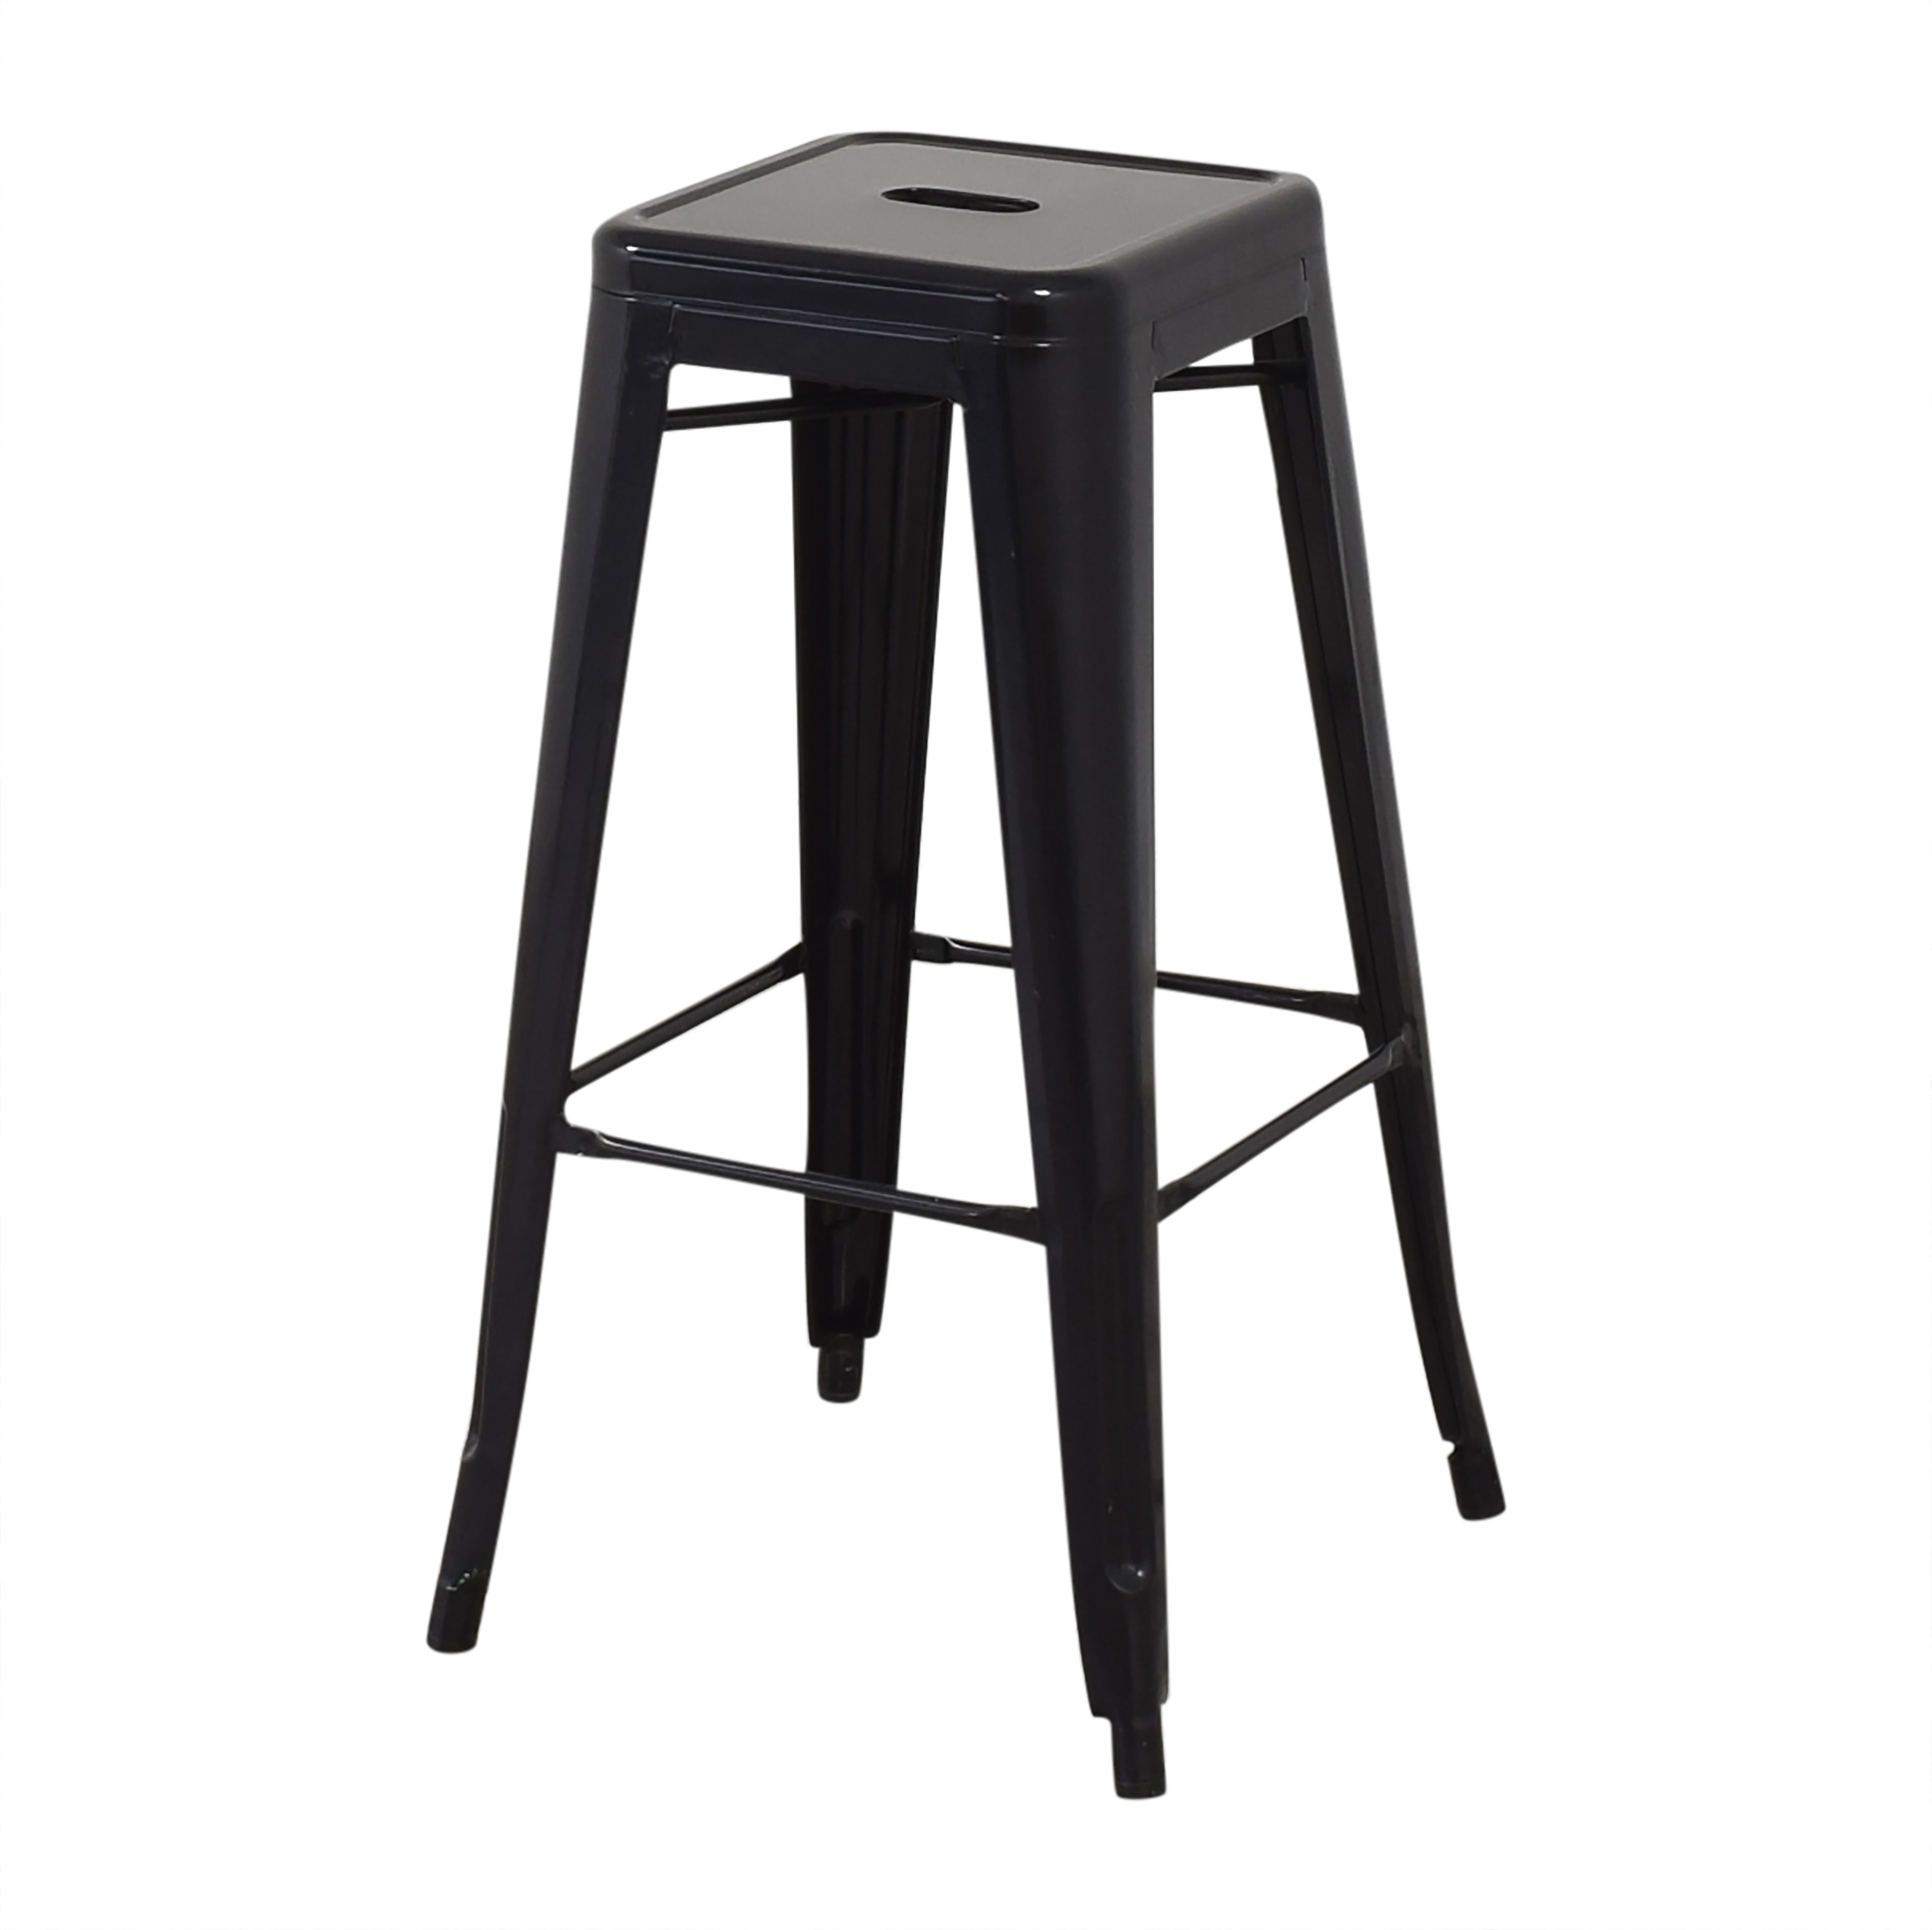 Dimensions Dimensions Backless Bar Stools used